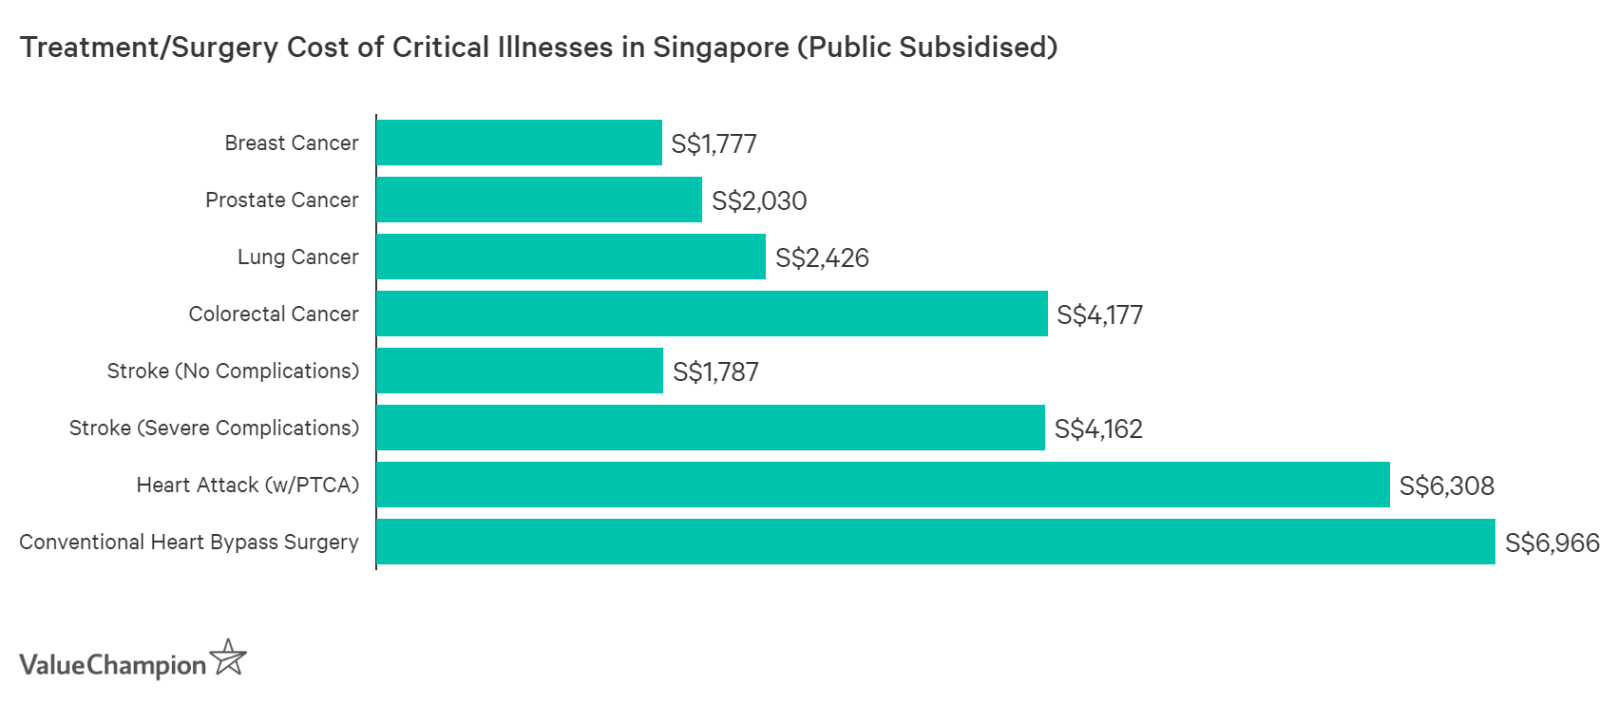 Critical illnesses like heart problems and cancers can cost thousands of dollars to treat in Singapore